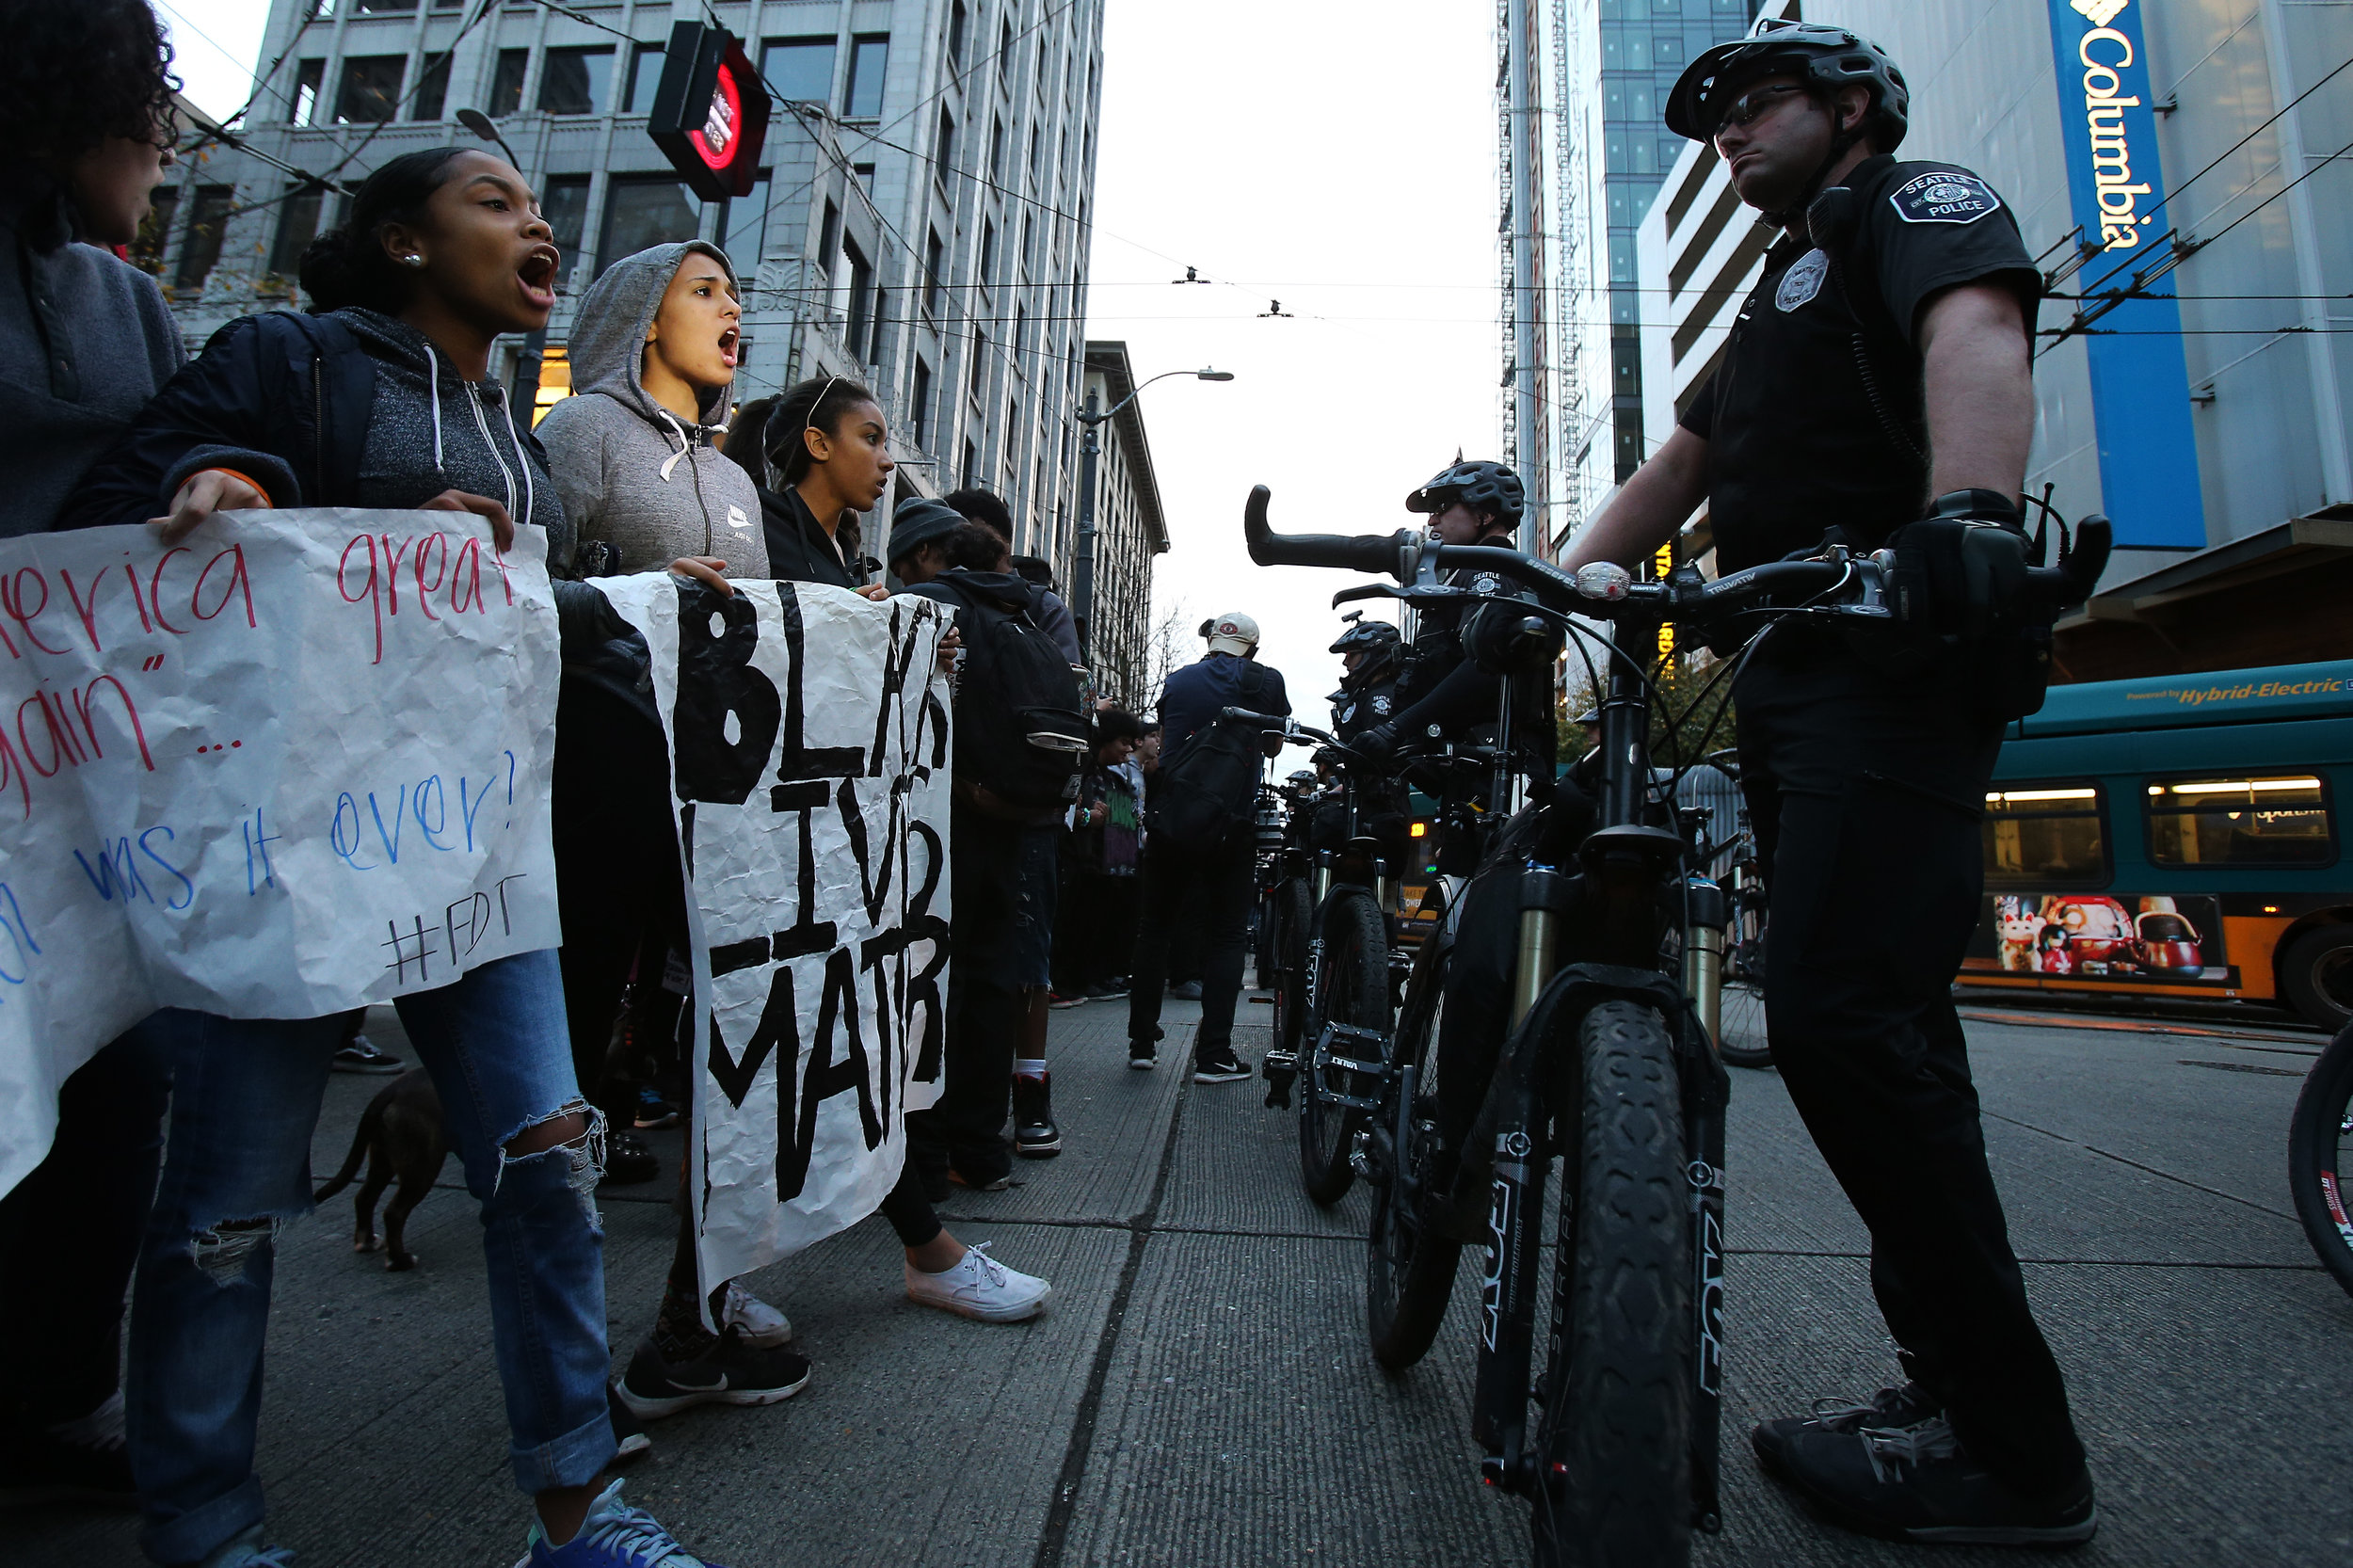 Protesters both students and adults yell at police in front of Westlake Park prior to making their way through downtown Seattle as police keep a watchful eye on Monday, November 14, 2016.